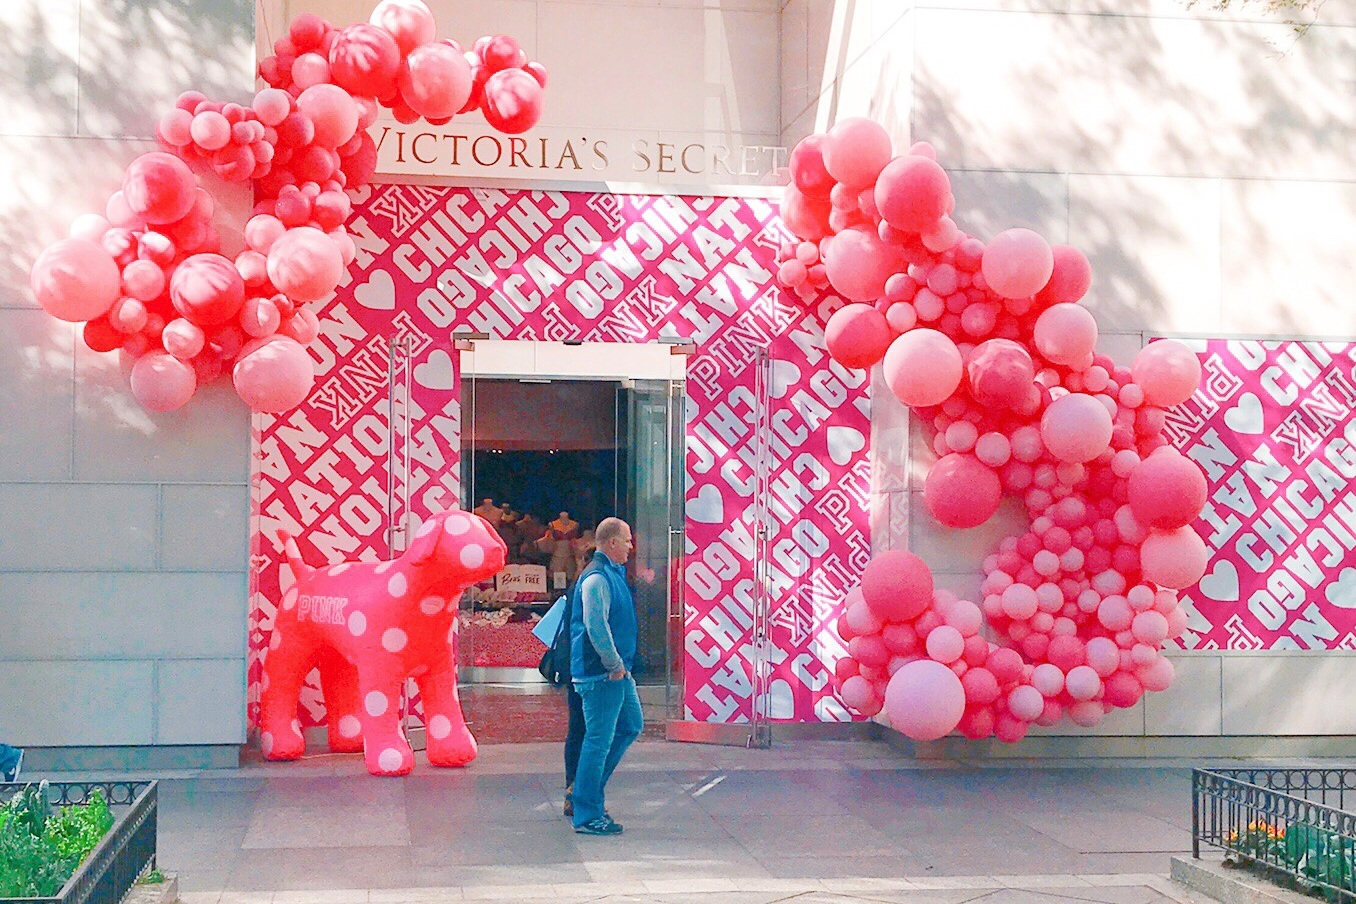 vroom_vroom_balloon_organic_balloon_garlan_installation_nashville_chicago_victoria_secret_pink.JPG.jpg